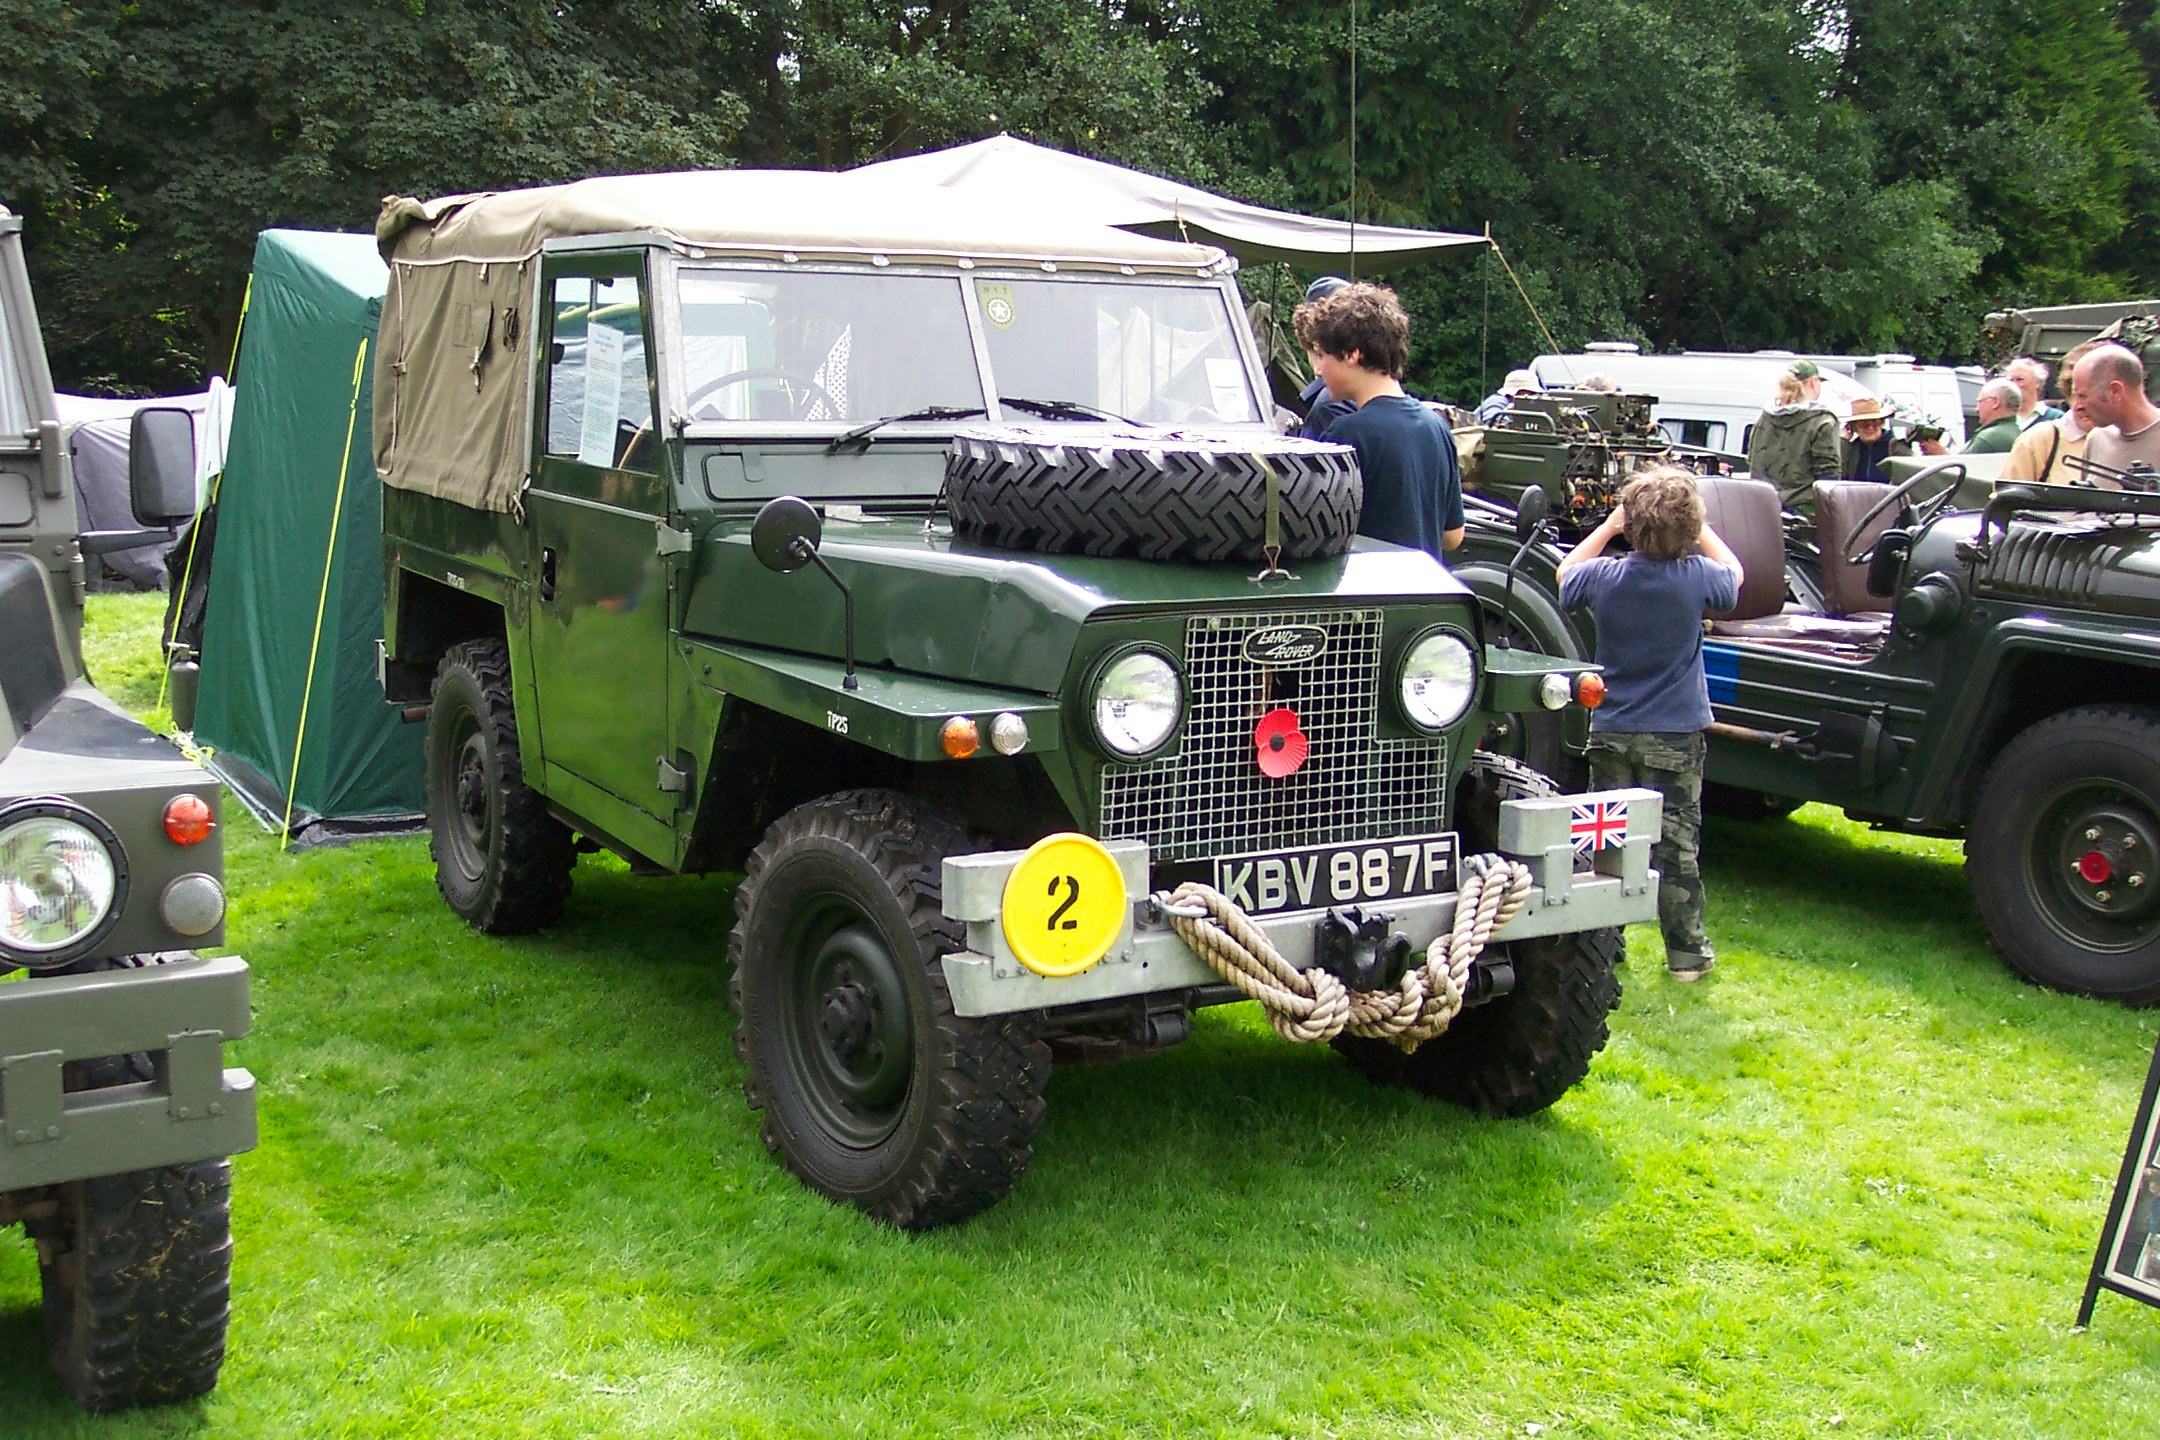 Land Rover S2 Lightweight KBV